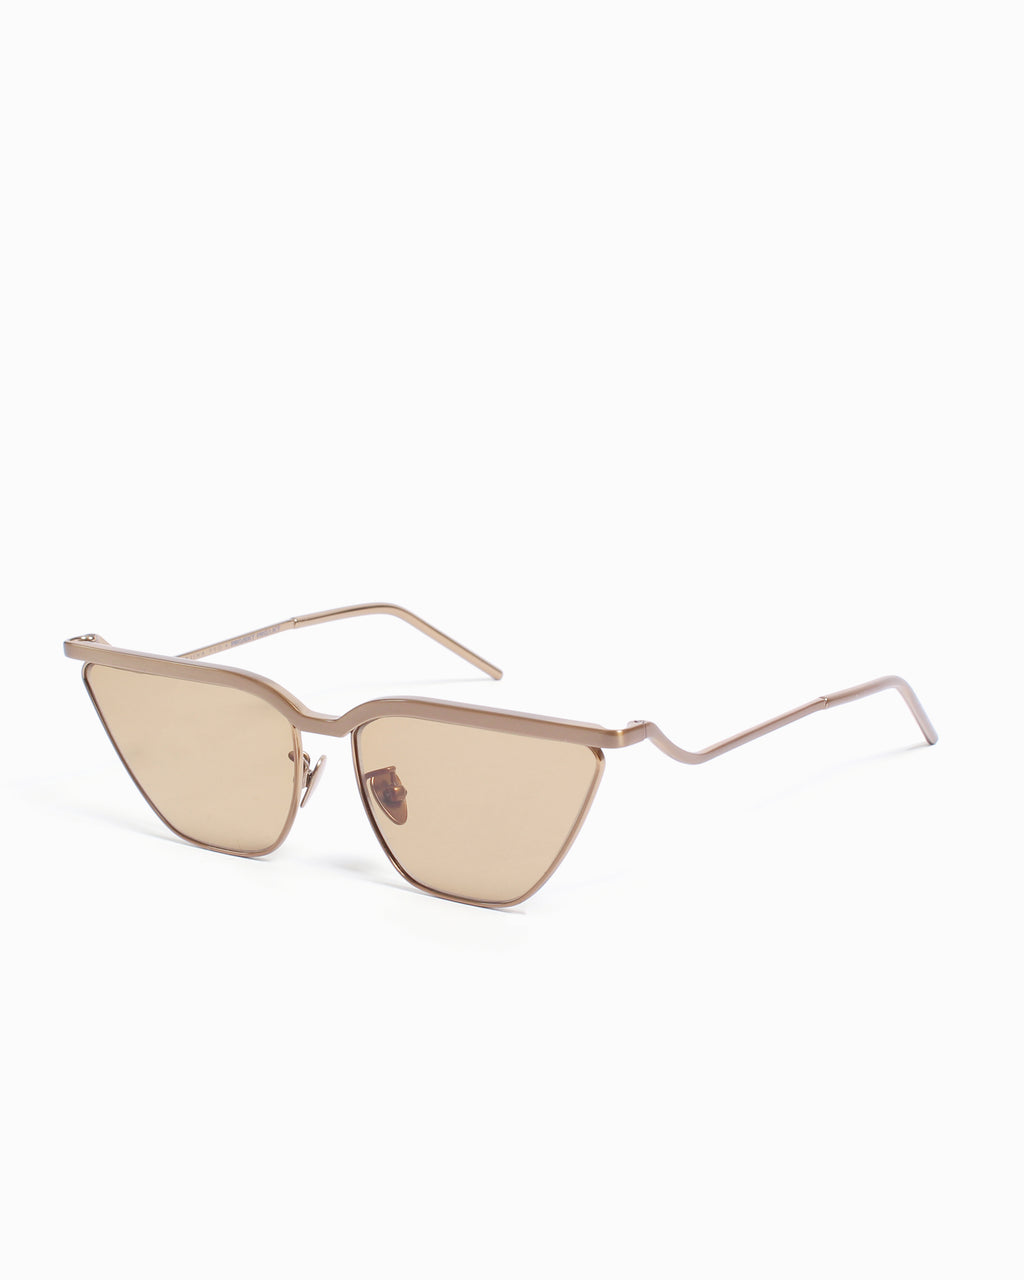 Kira Sunglasses Vintage Brown